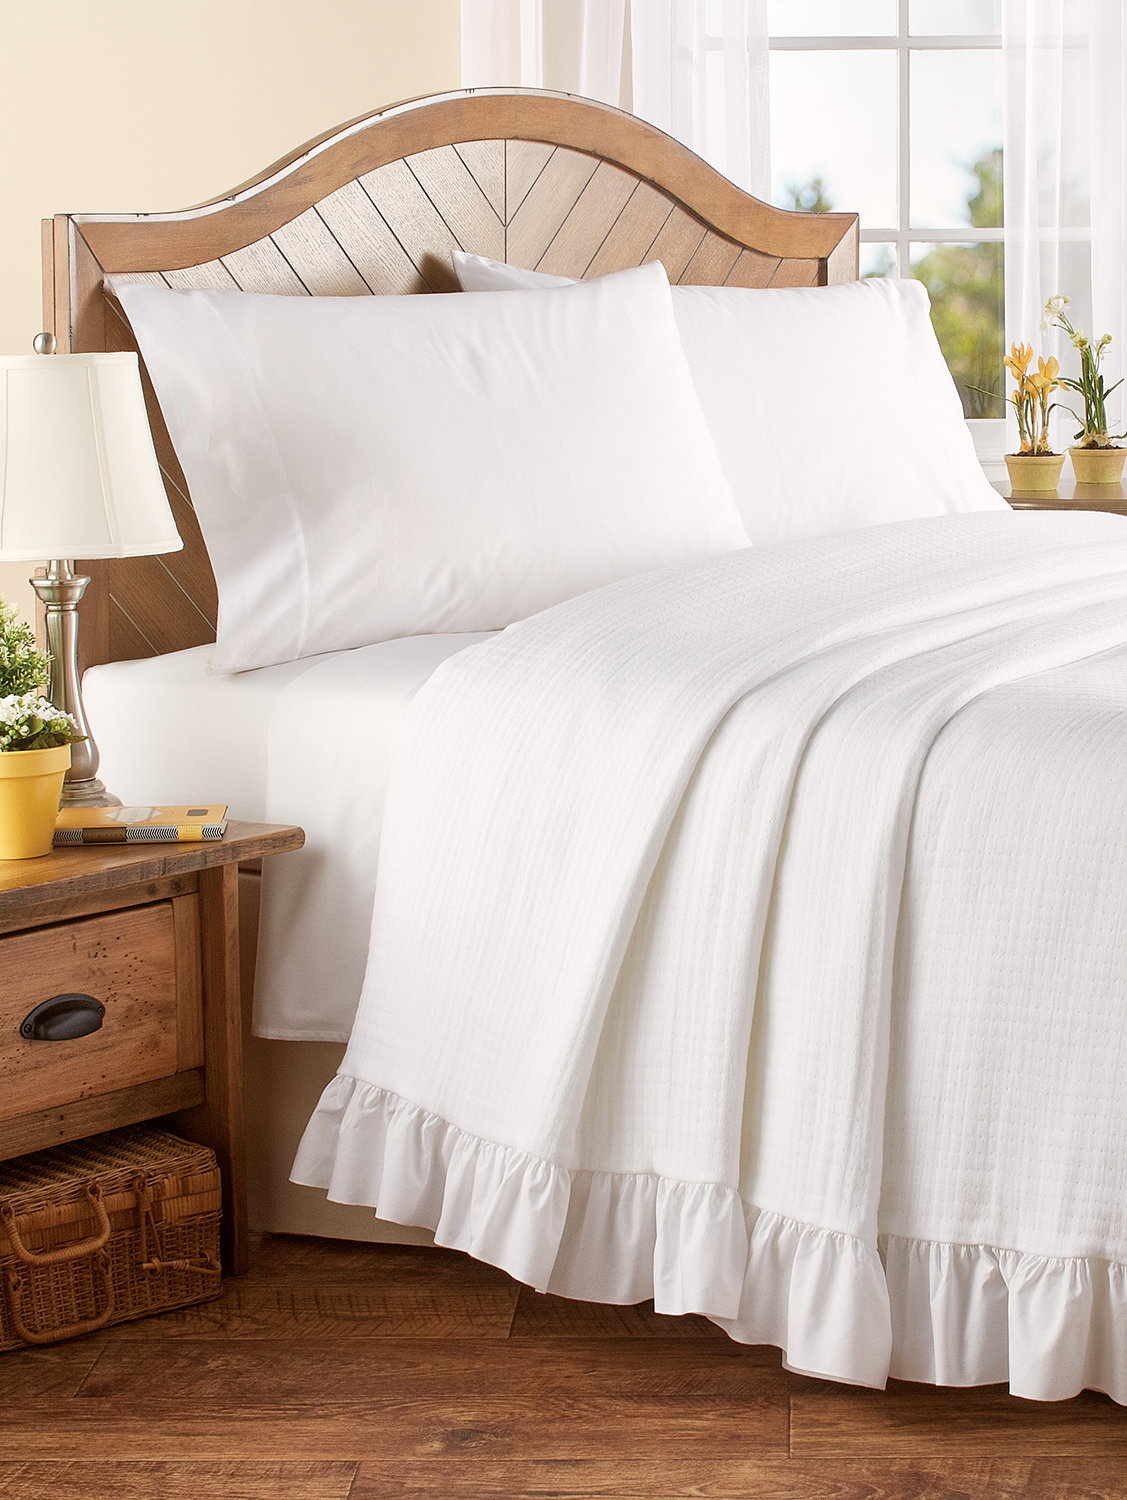 Pin By Catherine Colgan On Bedroom Ruffle Bedspread Bed Spreads White Bedspreads [ 1500 x 1127 Pixel ]